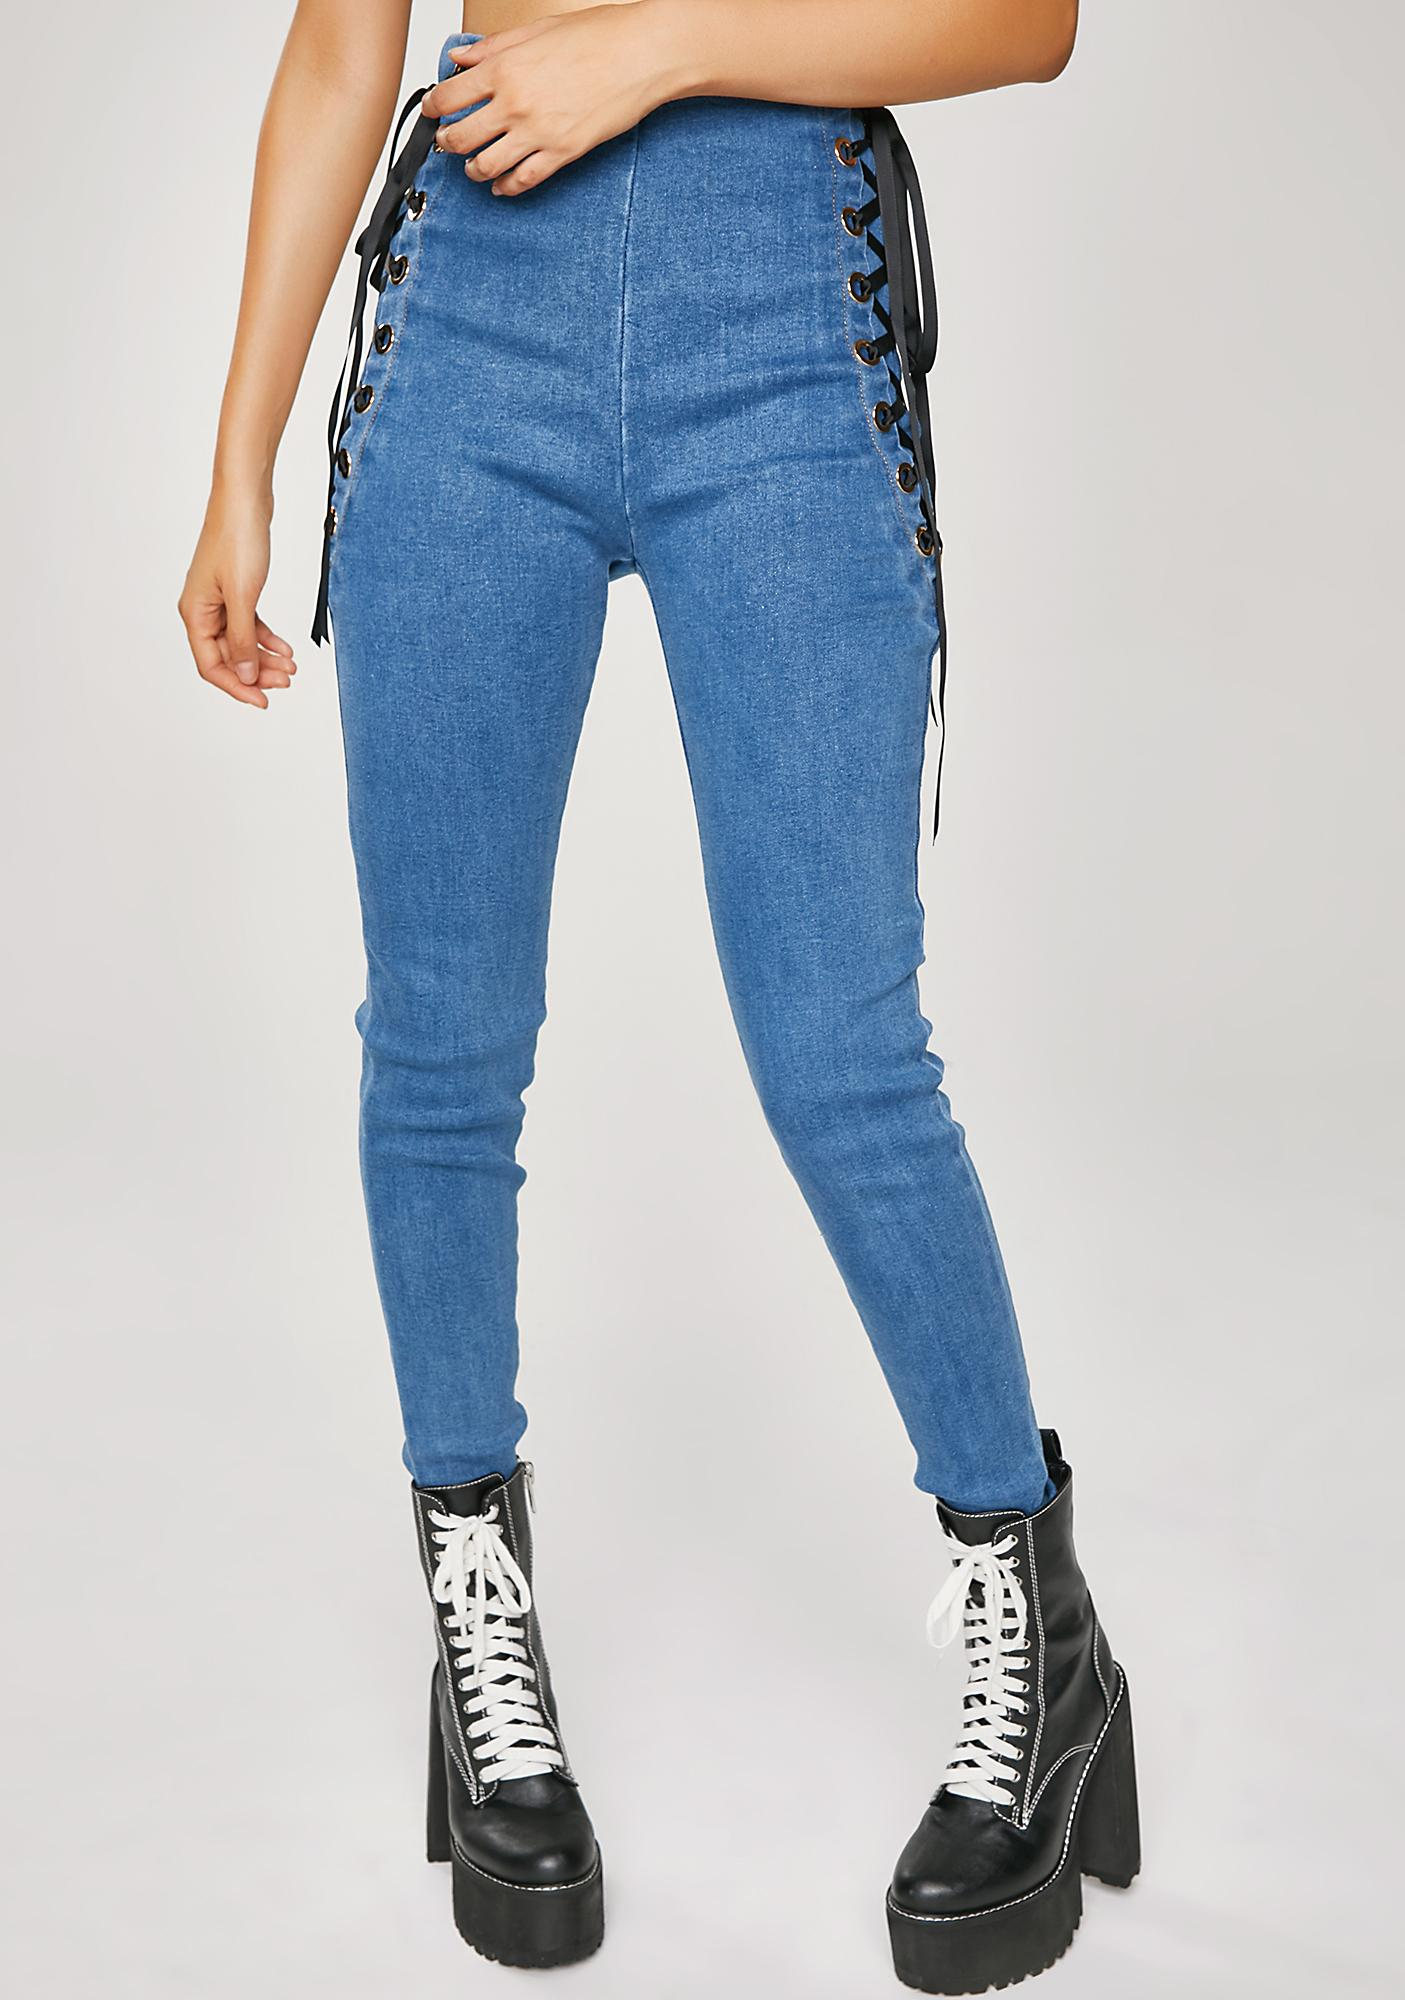 Even Better Lace-Up Jeans